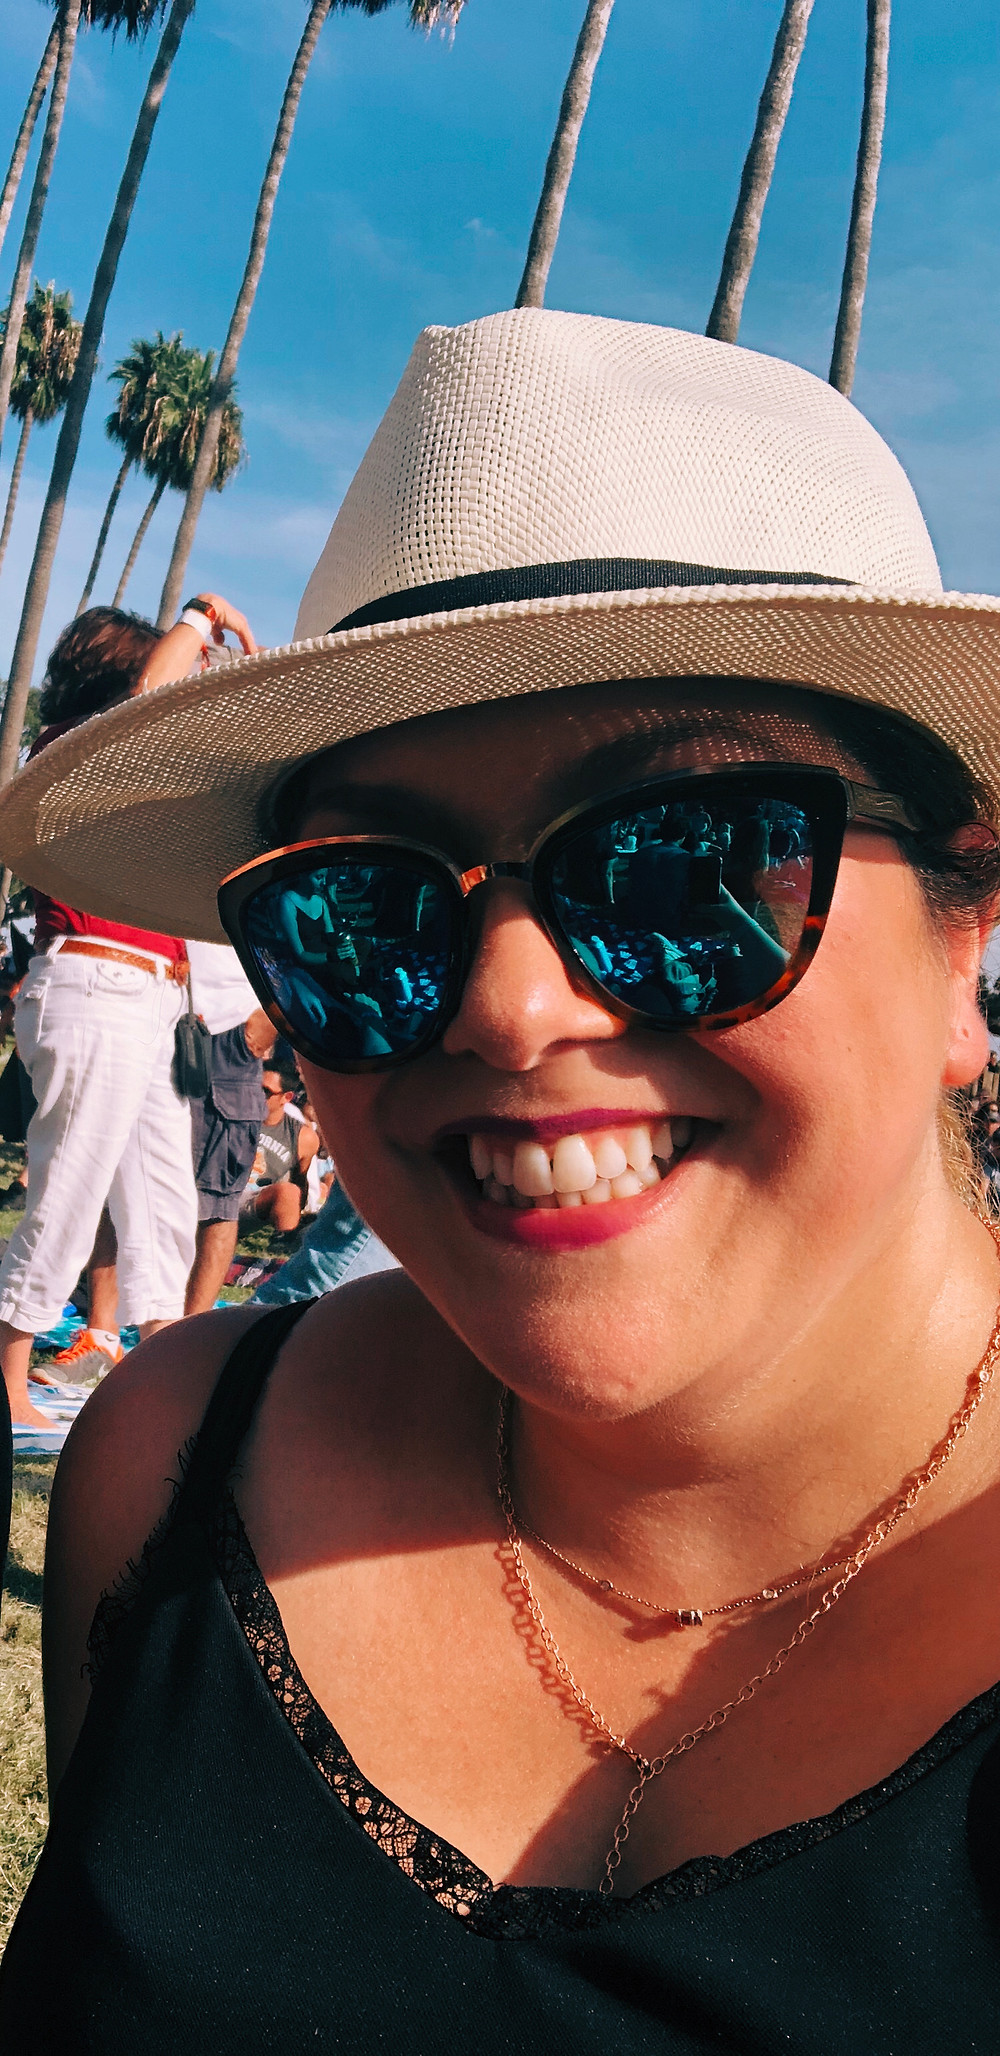 Me sporting my Panama hat at Ohana Fest in Dana Point this past September